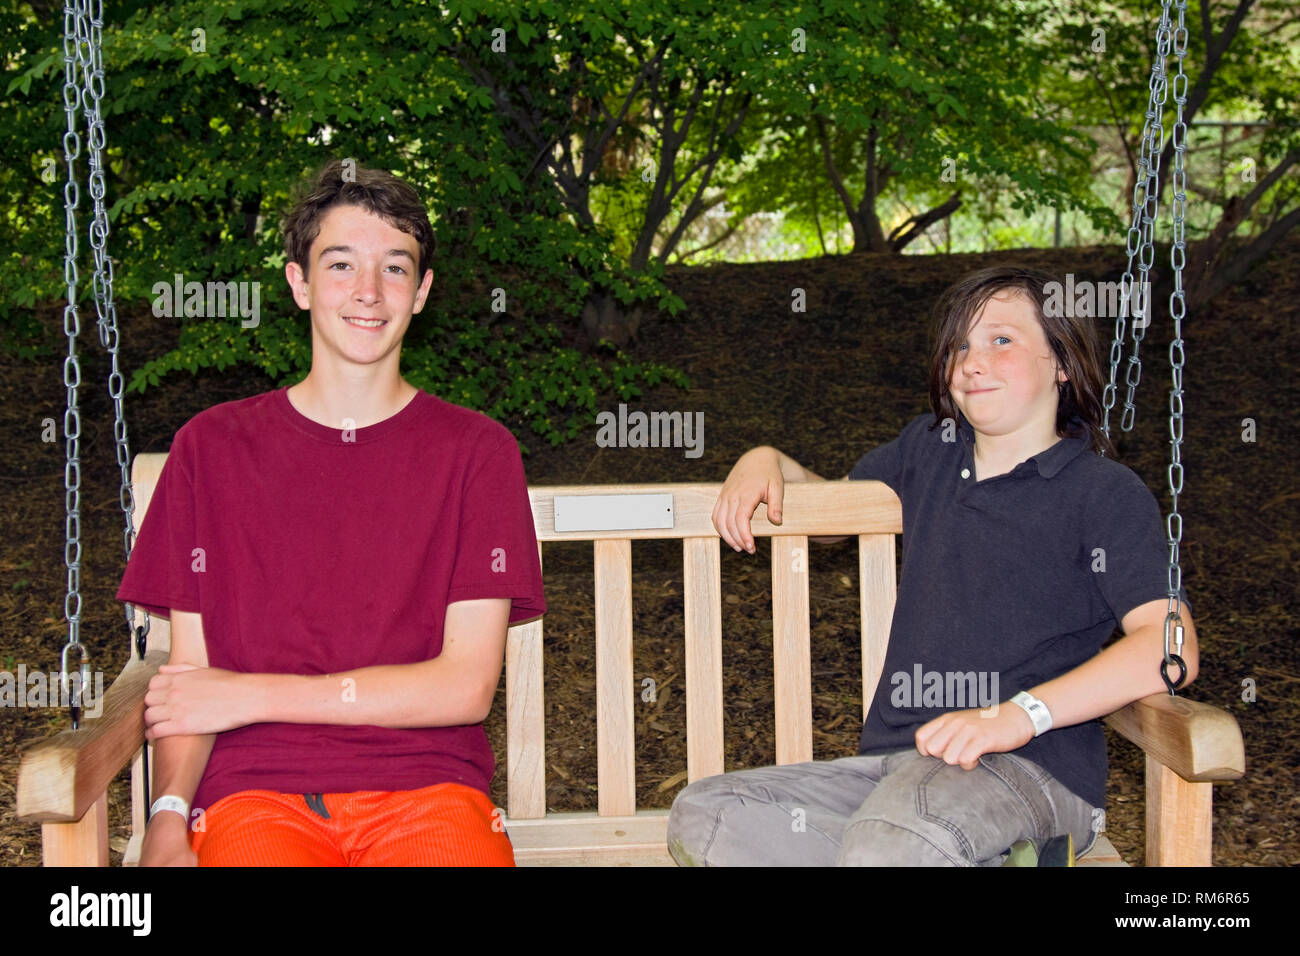 2 teen boys; wood seat swing; friends; woods; smiling; happy; relaxing, wrist bands, horizontal; MR - Stock Image